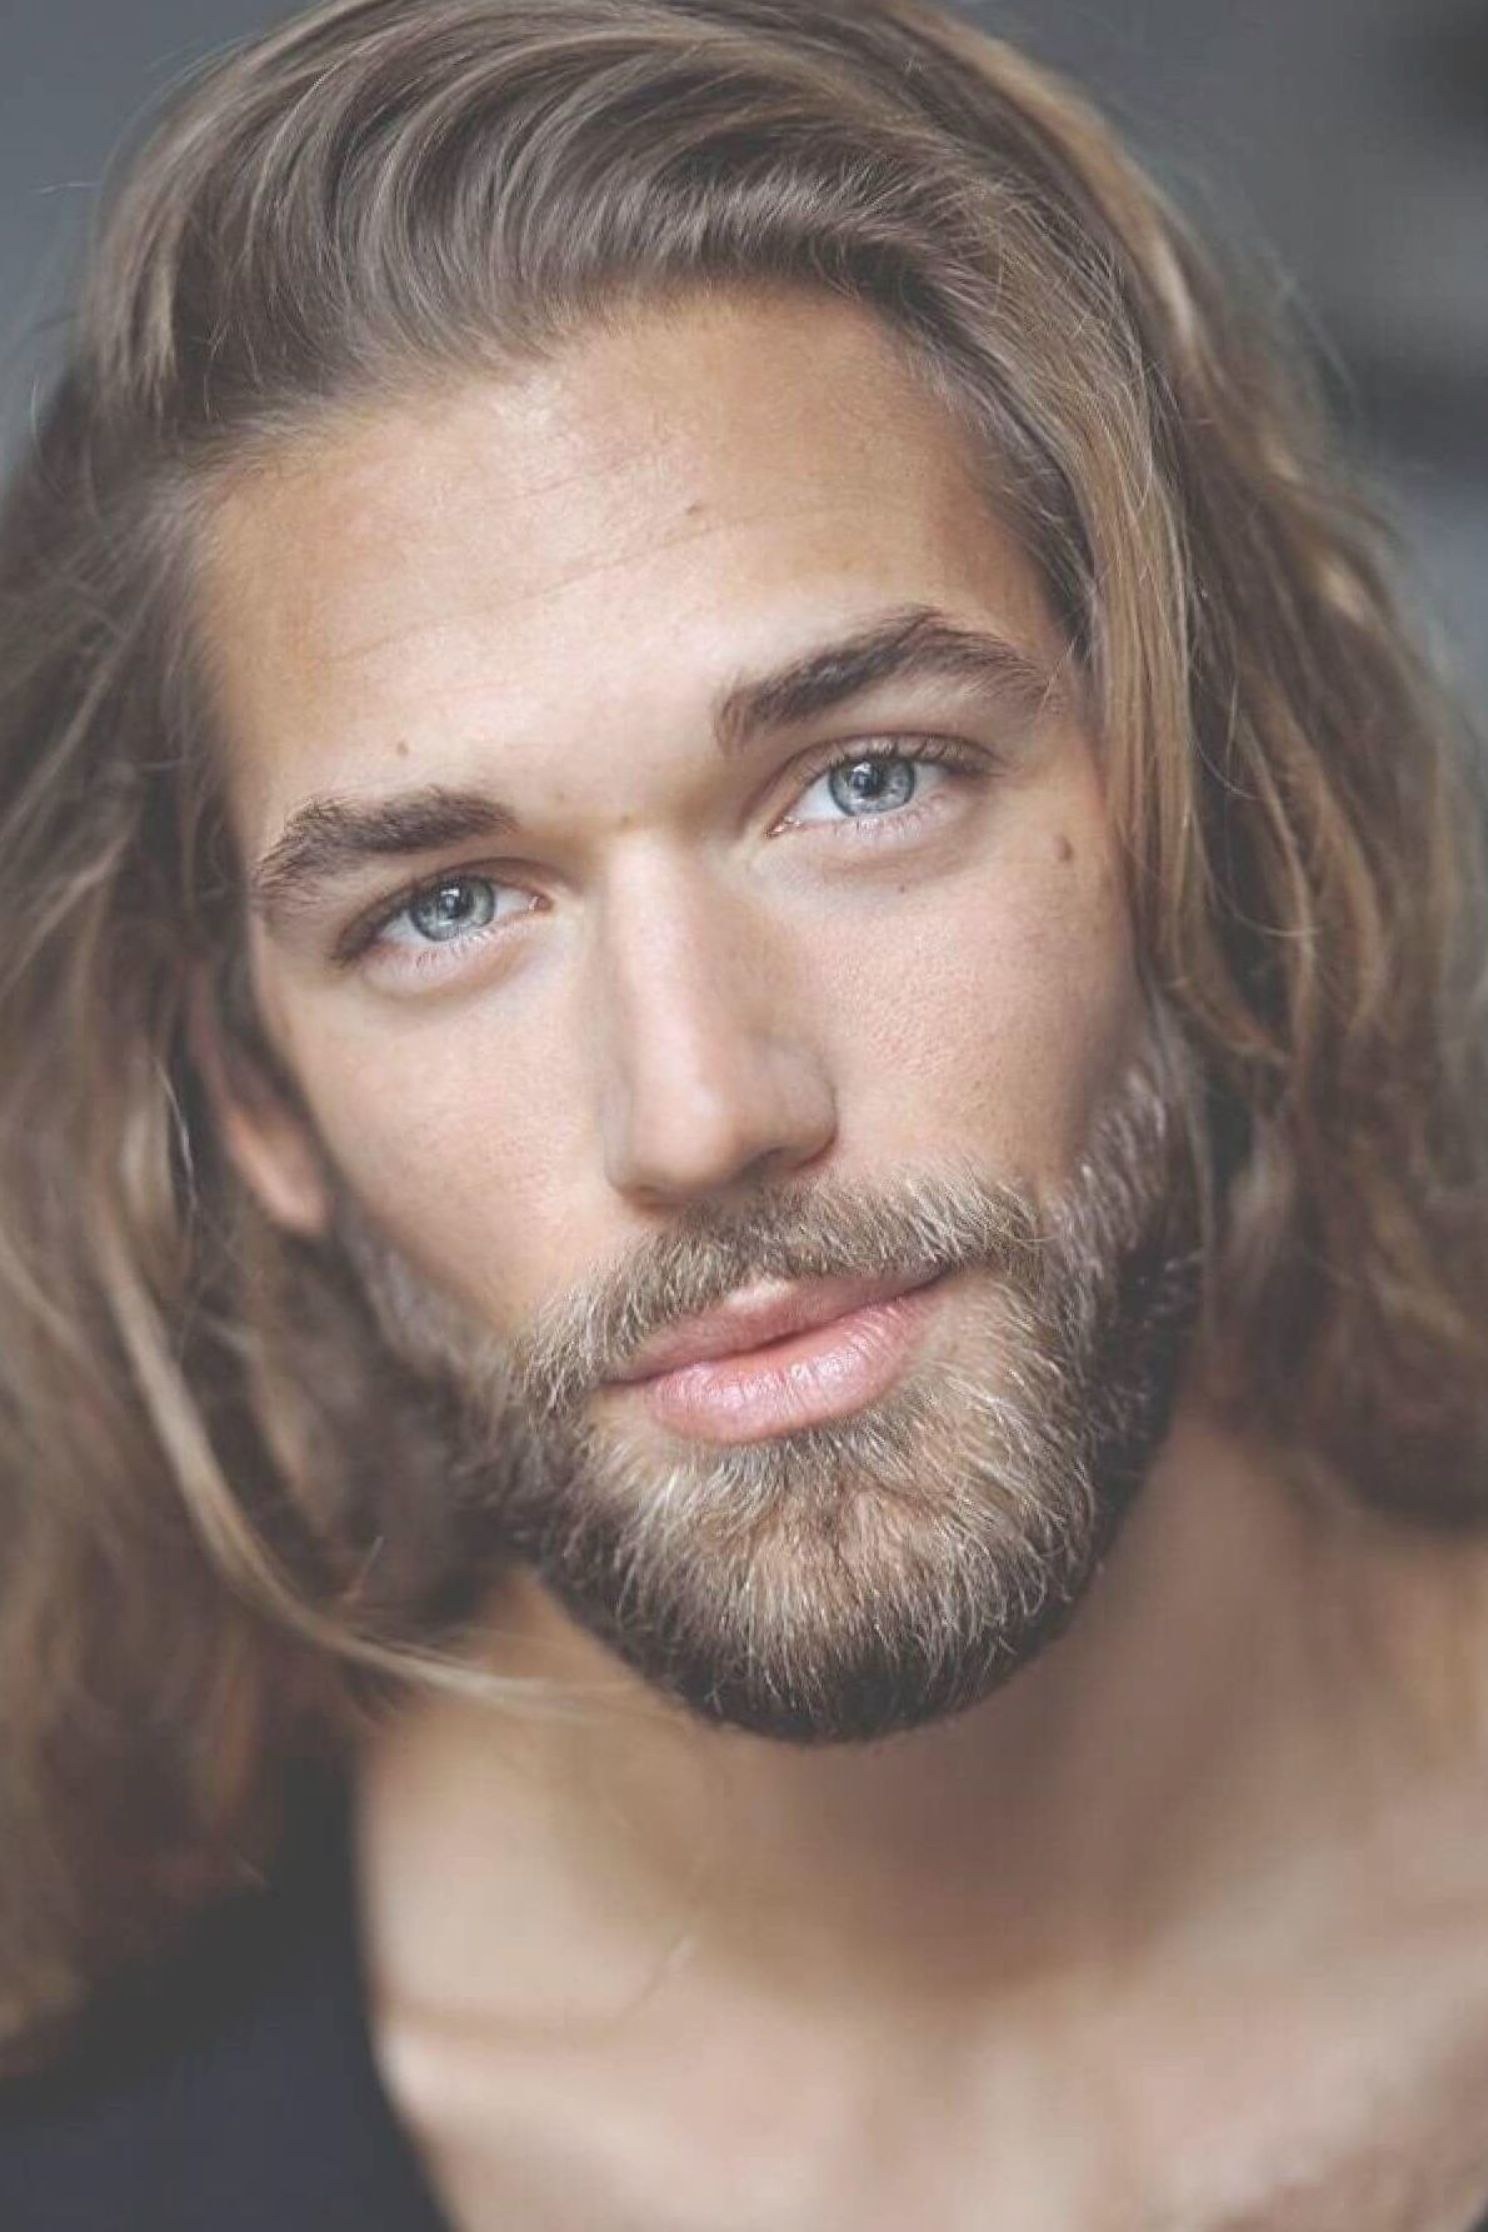 Men Love To Try Out New Hairstyles To Check Out Which Suits Them The Best They Even Follow The Male Models With Lo Mens Hairstyles Beard Life Haircuts For Men